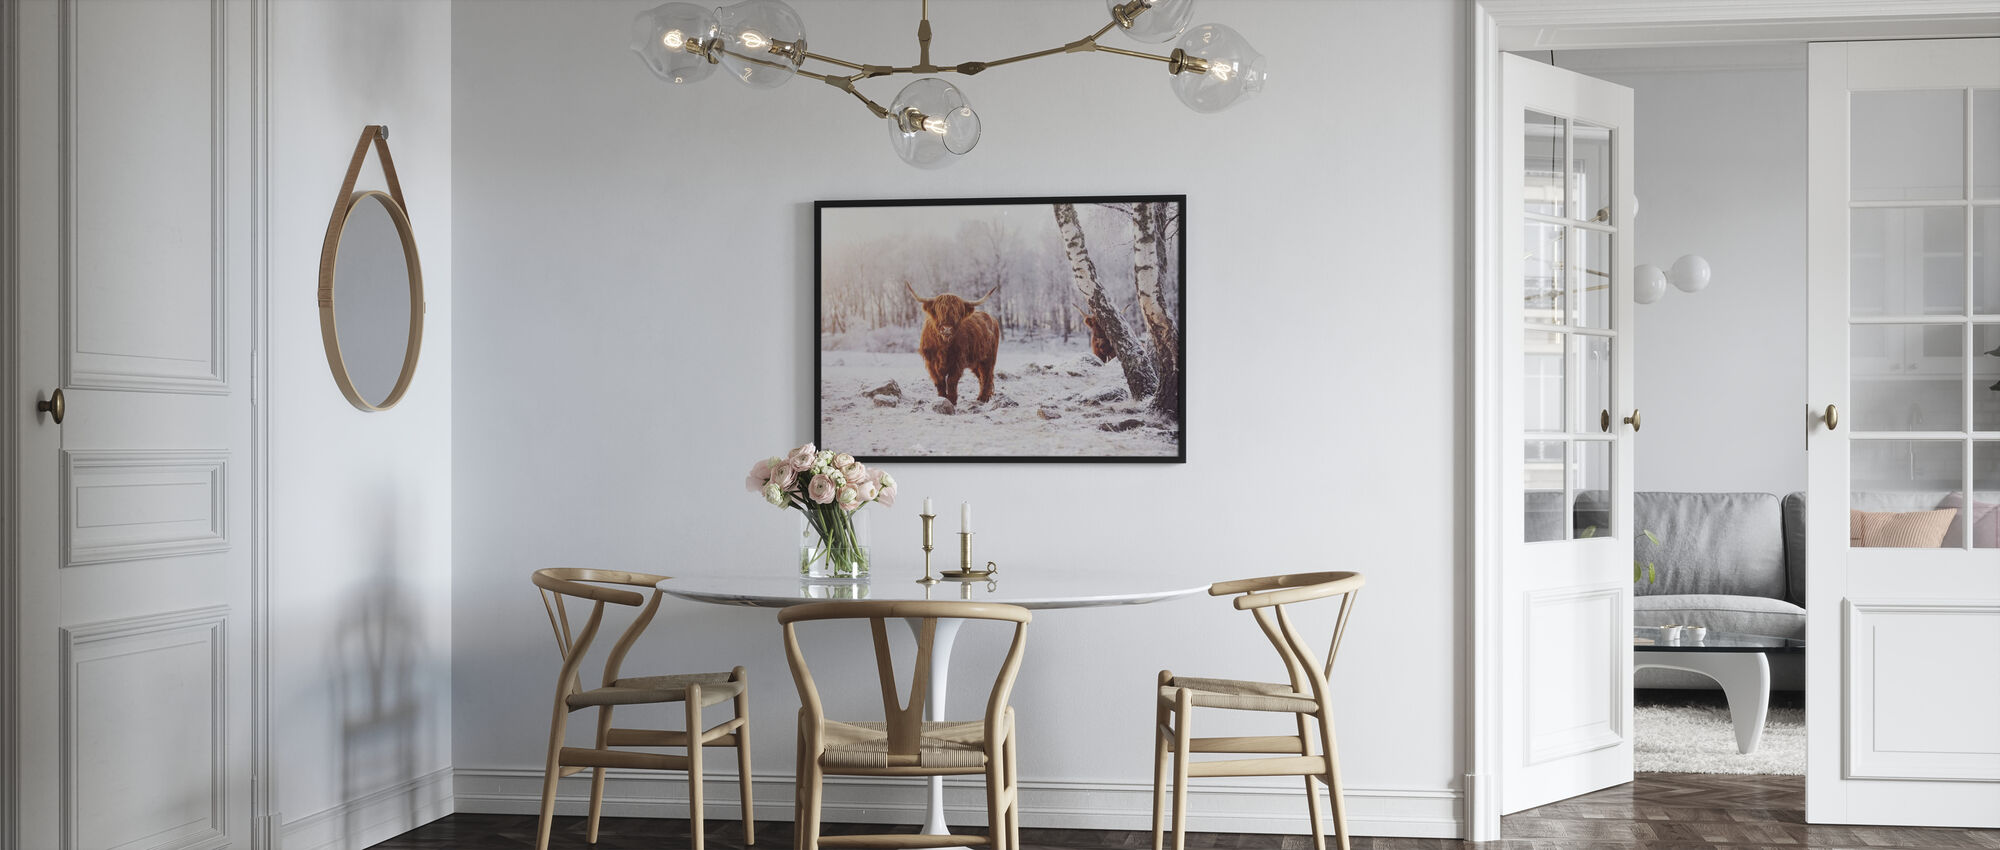 Highland Cattle - Framed print - Kitchen